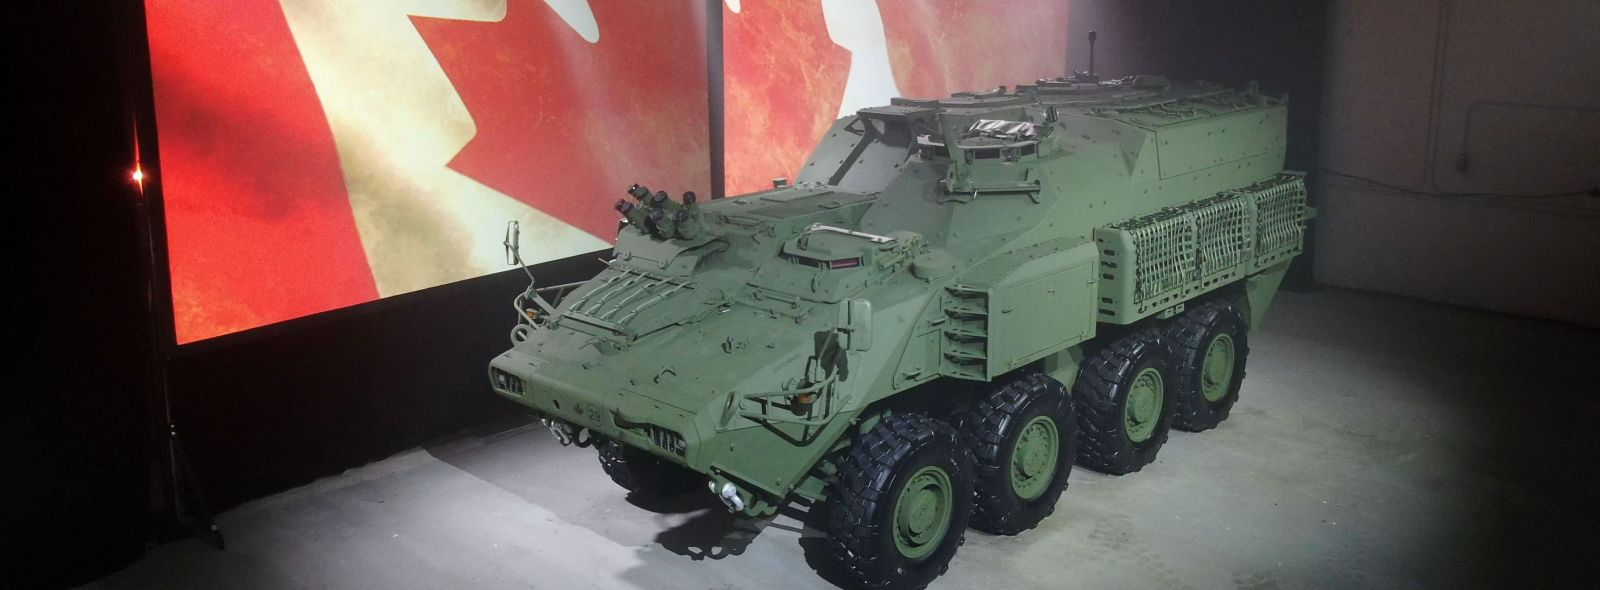 General Dynamics shows that the ACSV was developed for Canada